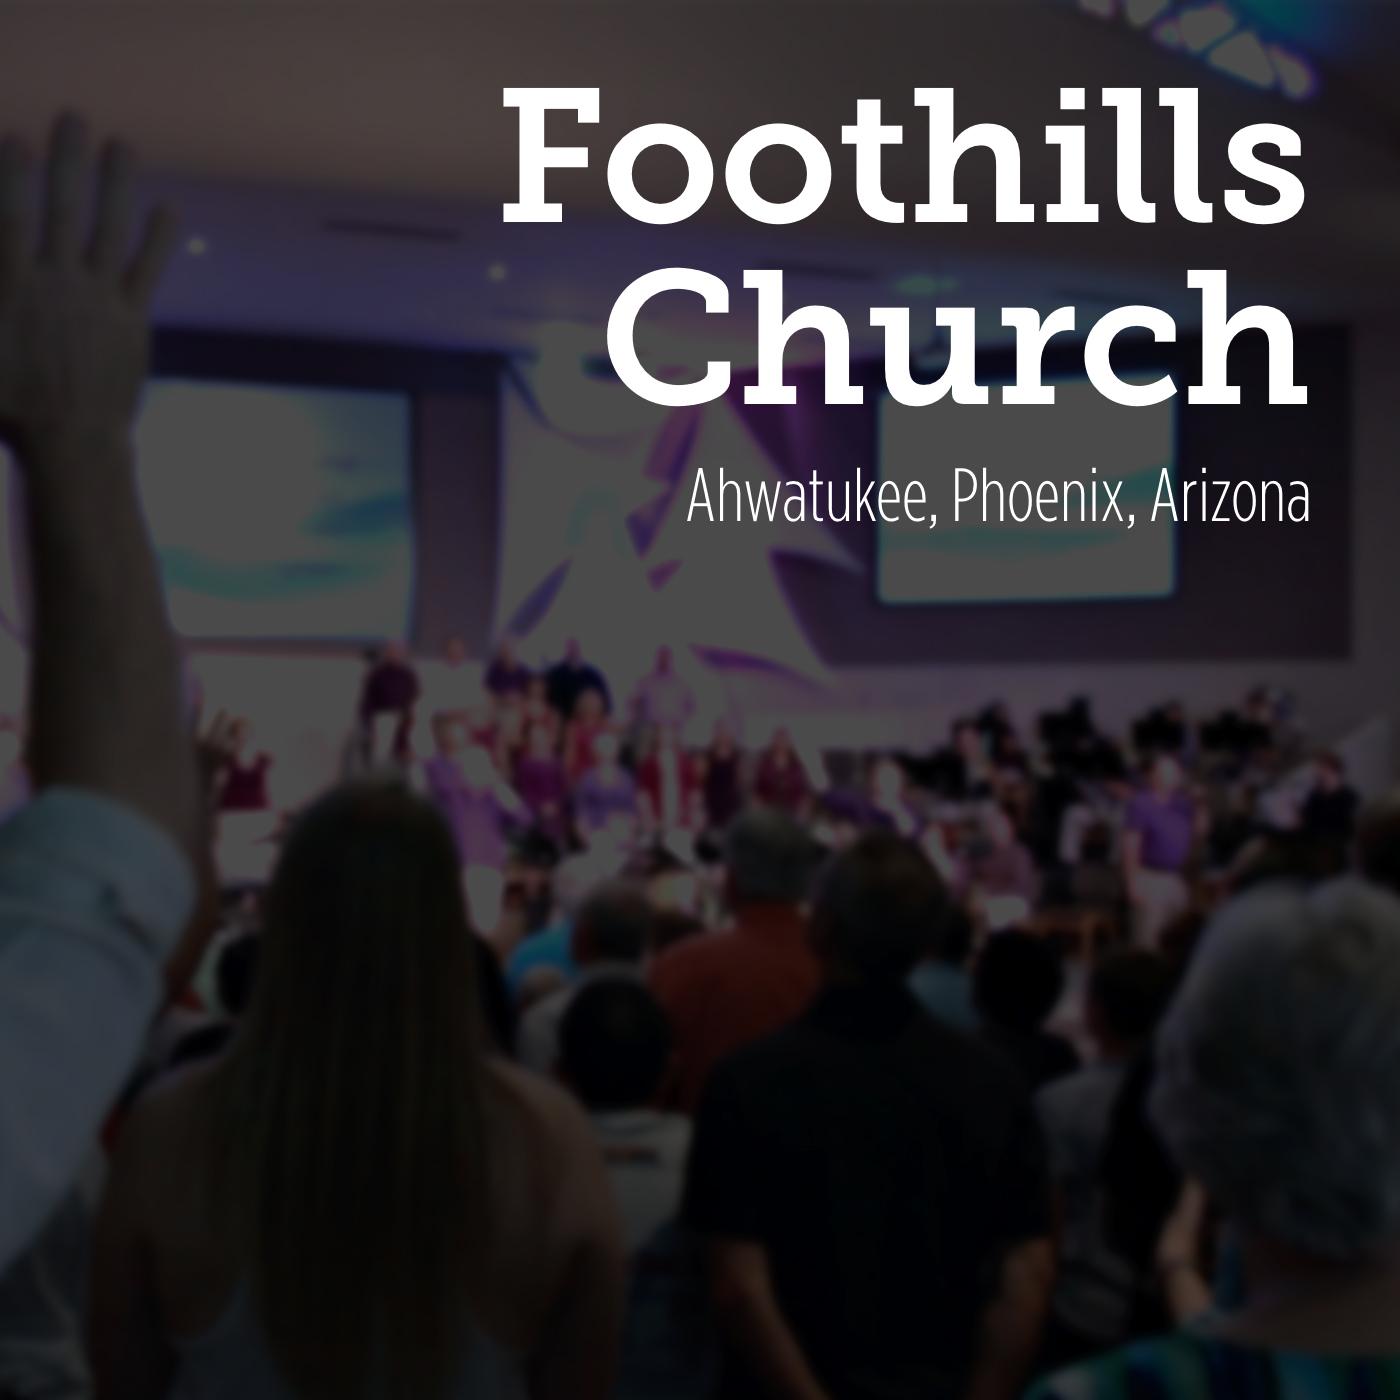 Foothills Church